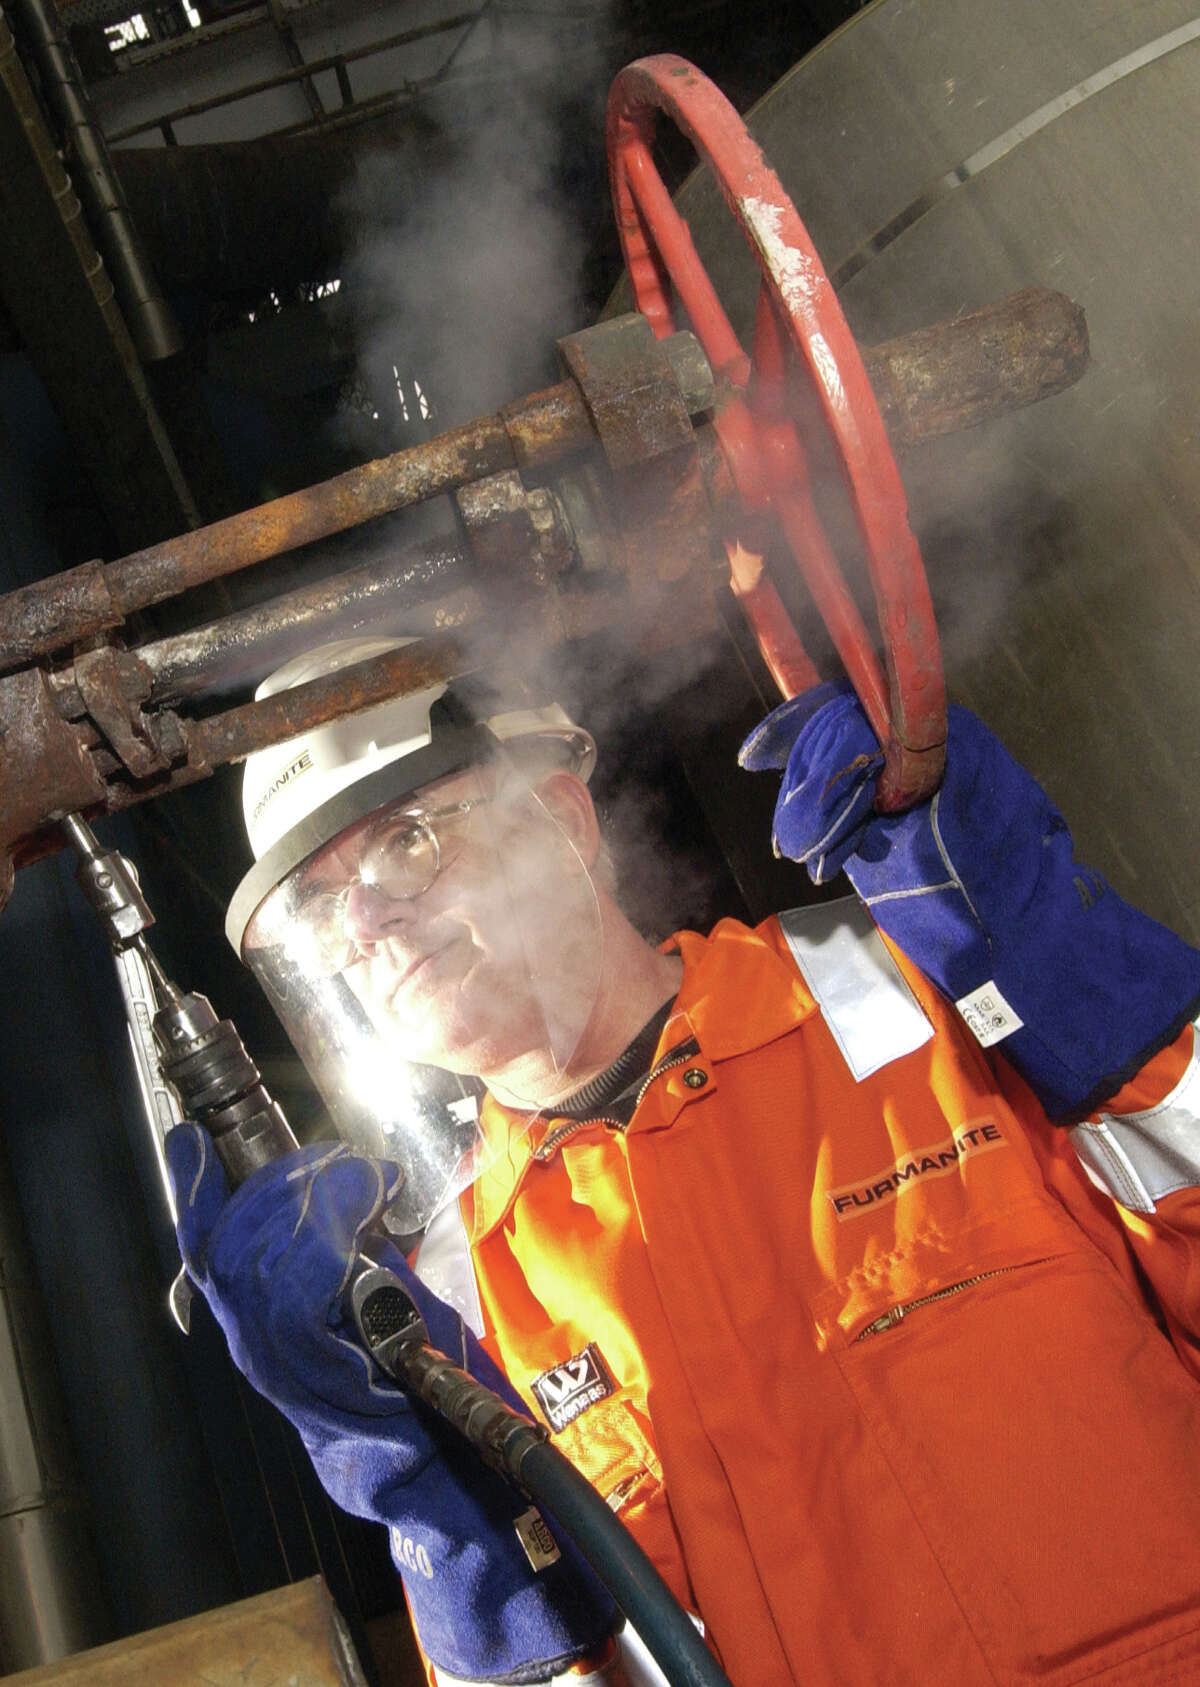 A furmanite service technician seals a leak in a valve, using their proprietary compound, at a process plant.